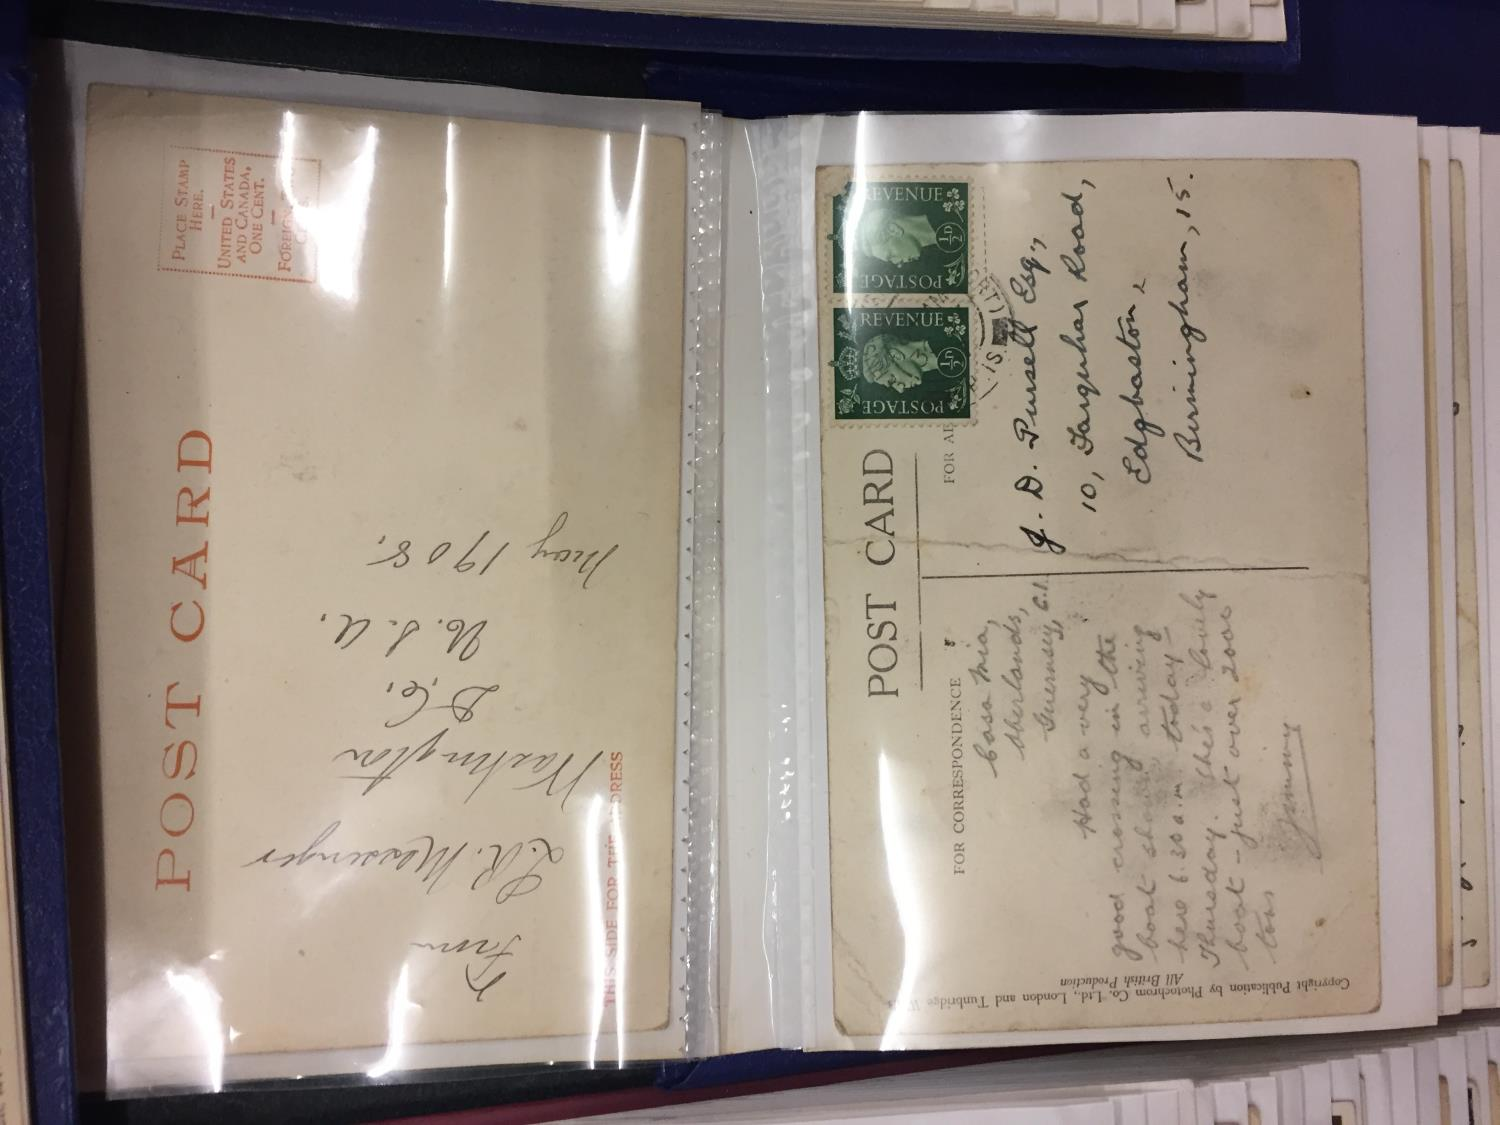 A LARGE COLLECTION OF 550+ ANTIQUE AND VINTAGE POSTCARDS RANGING FROM 1908-1970'S. MAINLEY UK - SOME - Image 9 of 14